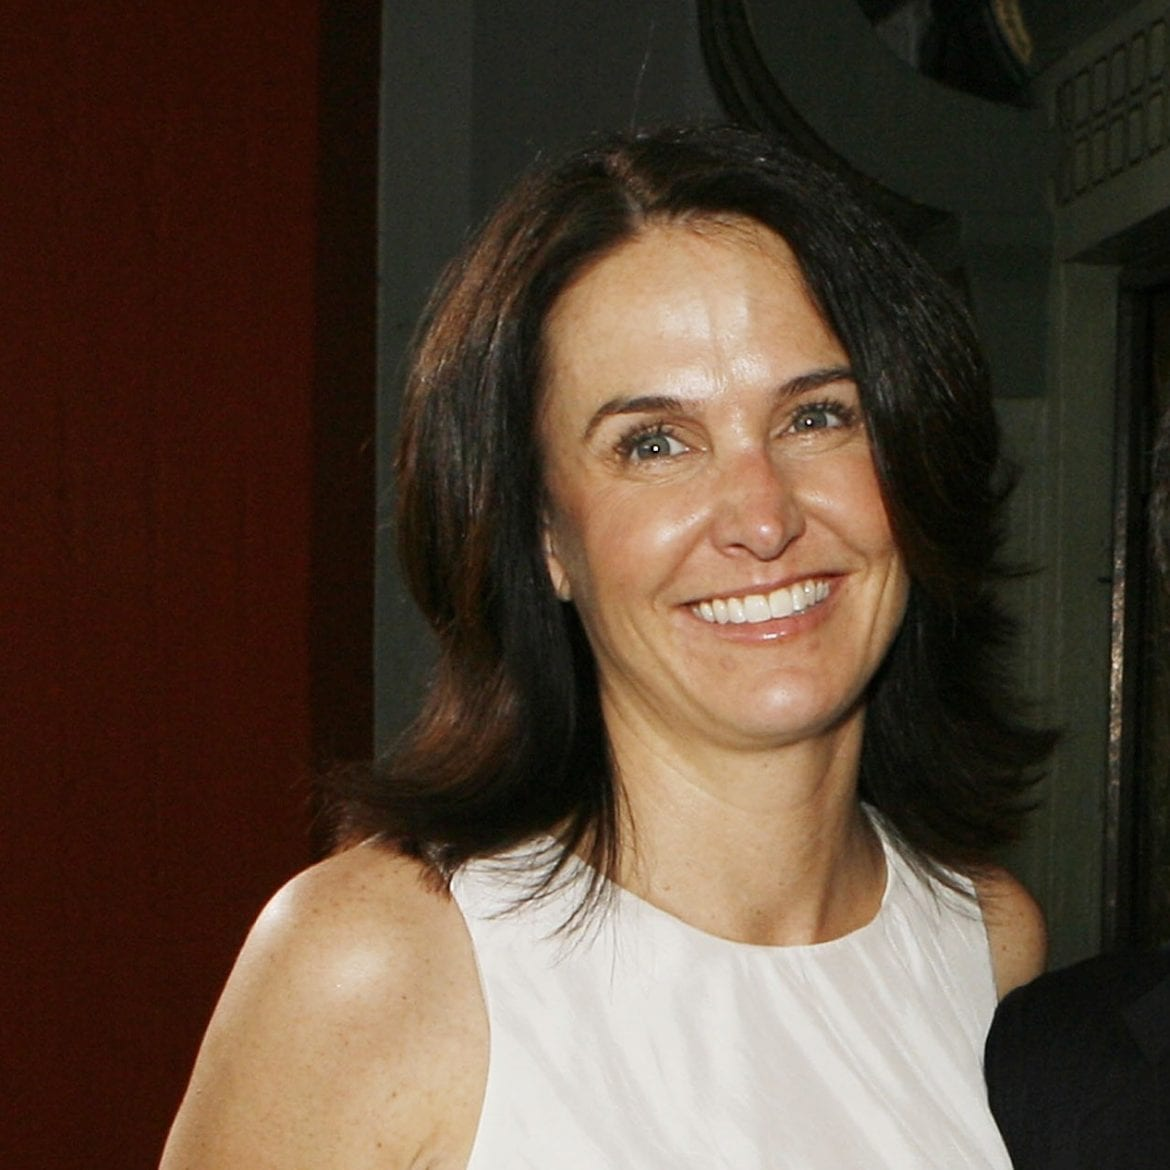 Rose McGowan's Former Manager Jill Messick Dies at 50